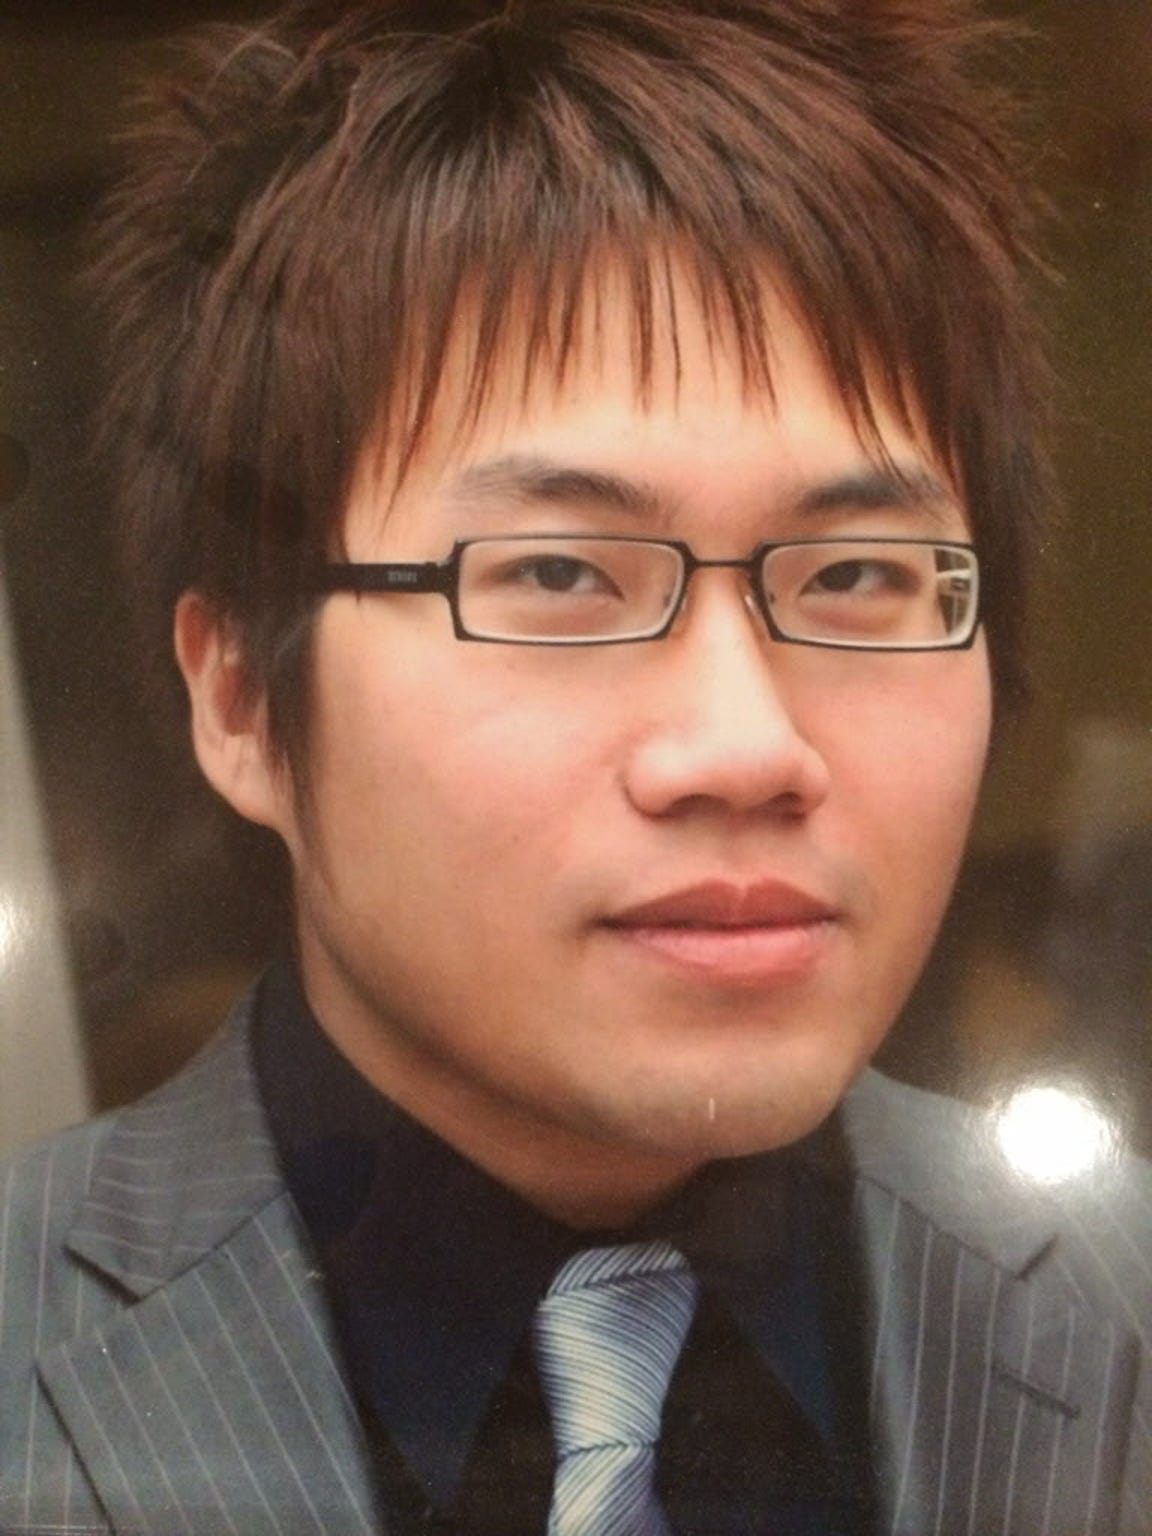 Richard Din, a 25-year-old researcher, died in 2012 after unknowingly becoming infected by Neisseria meningitides at a lab inside San Francisco's VA medical center.